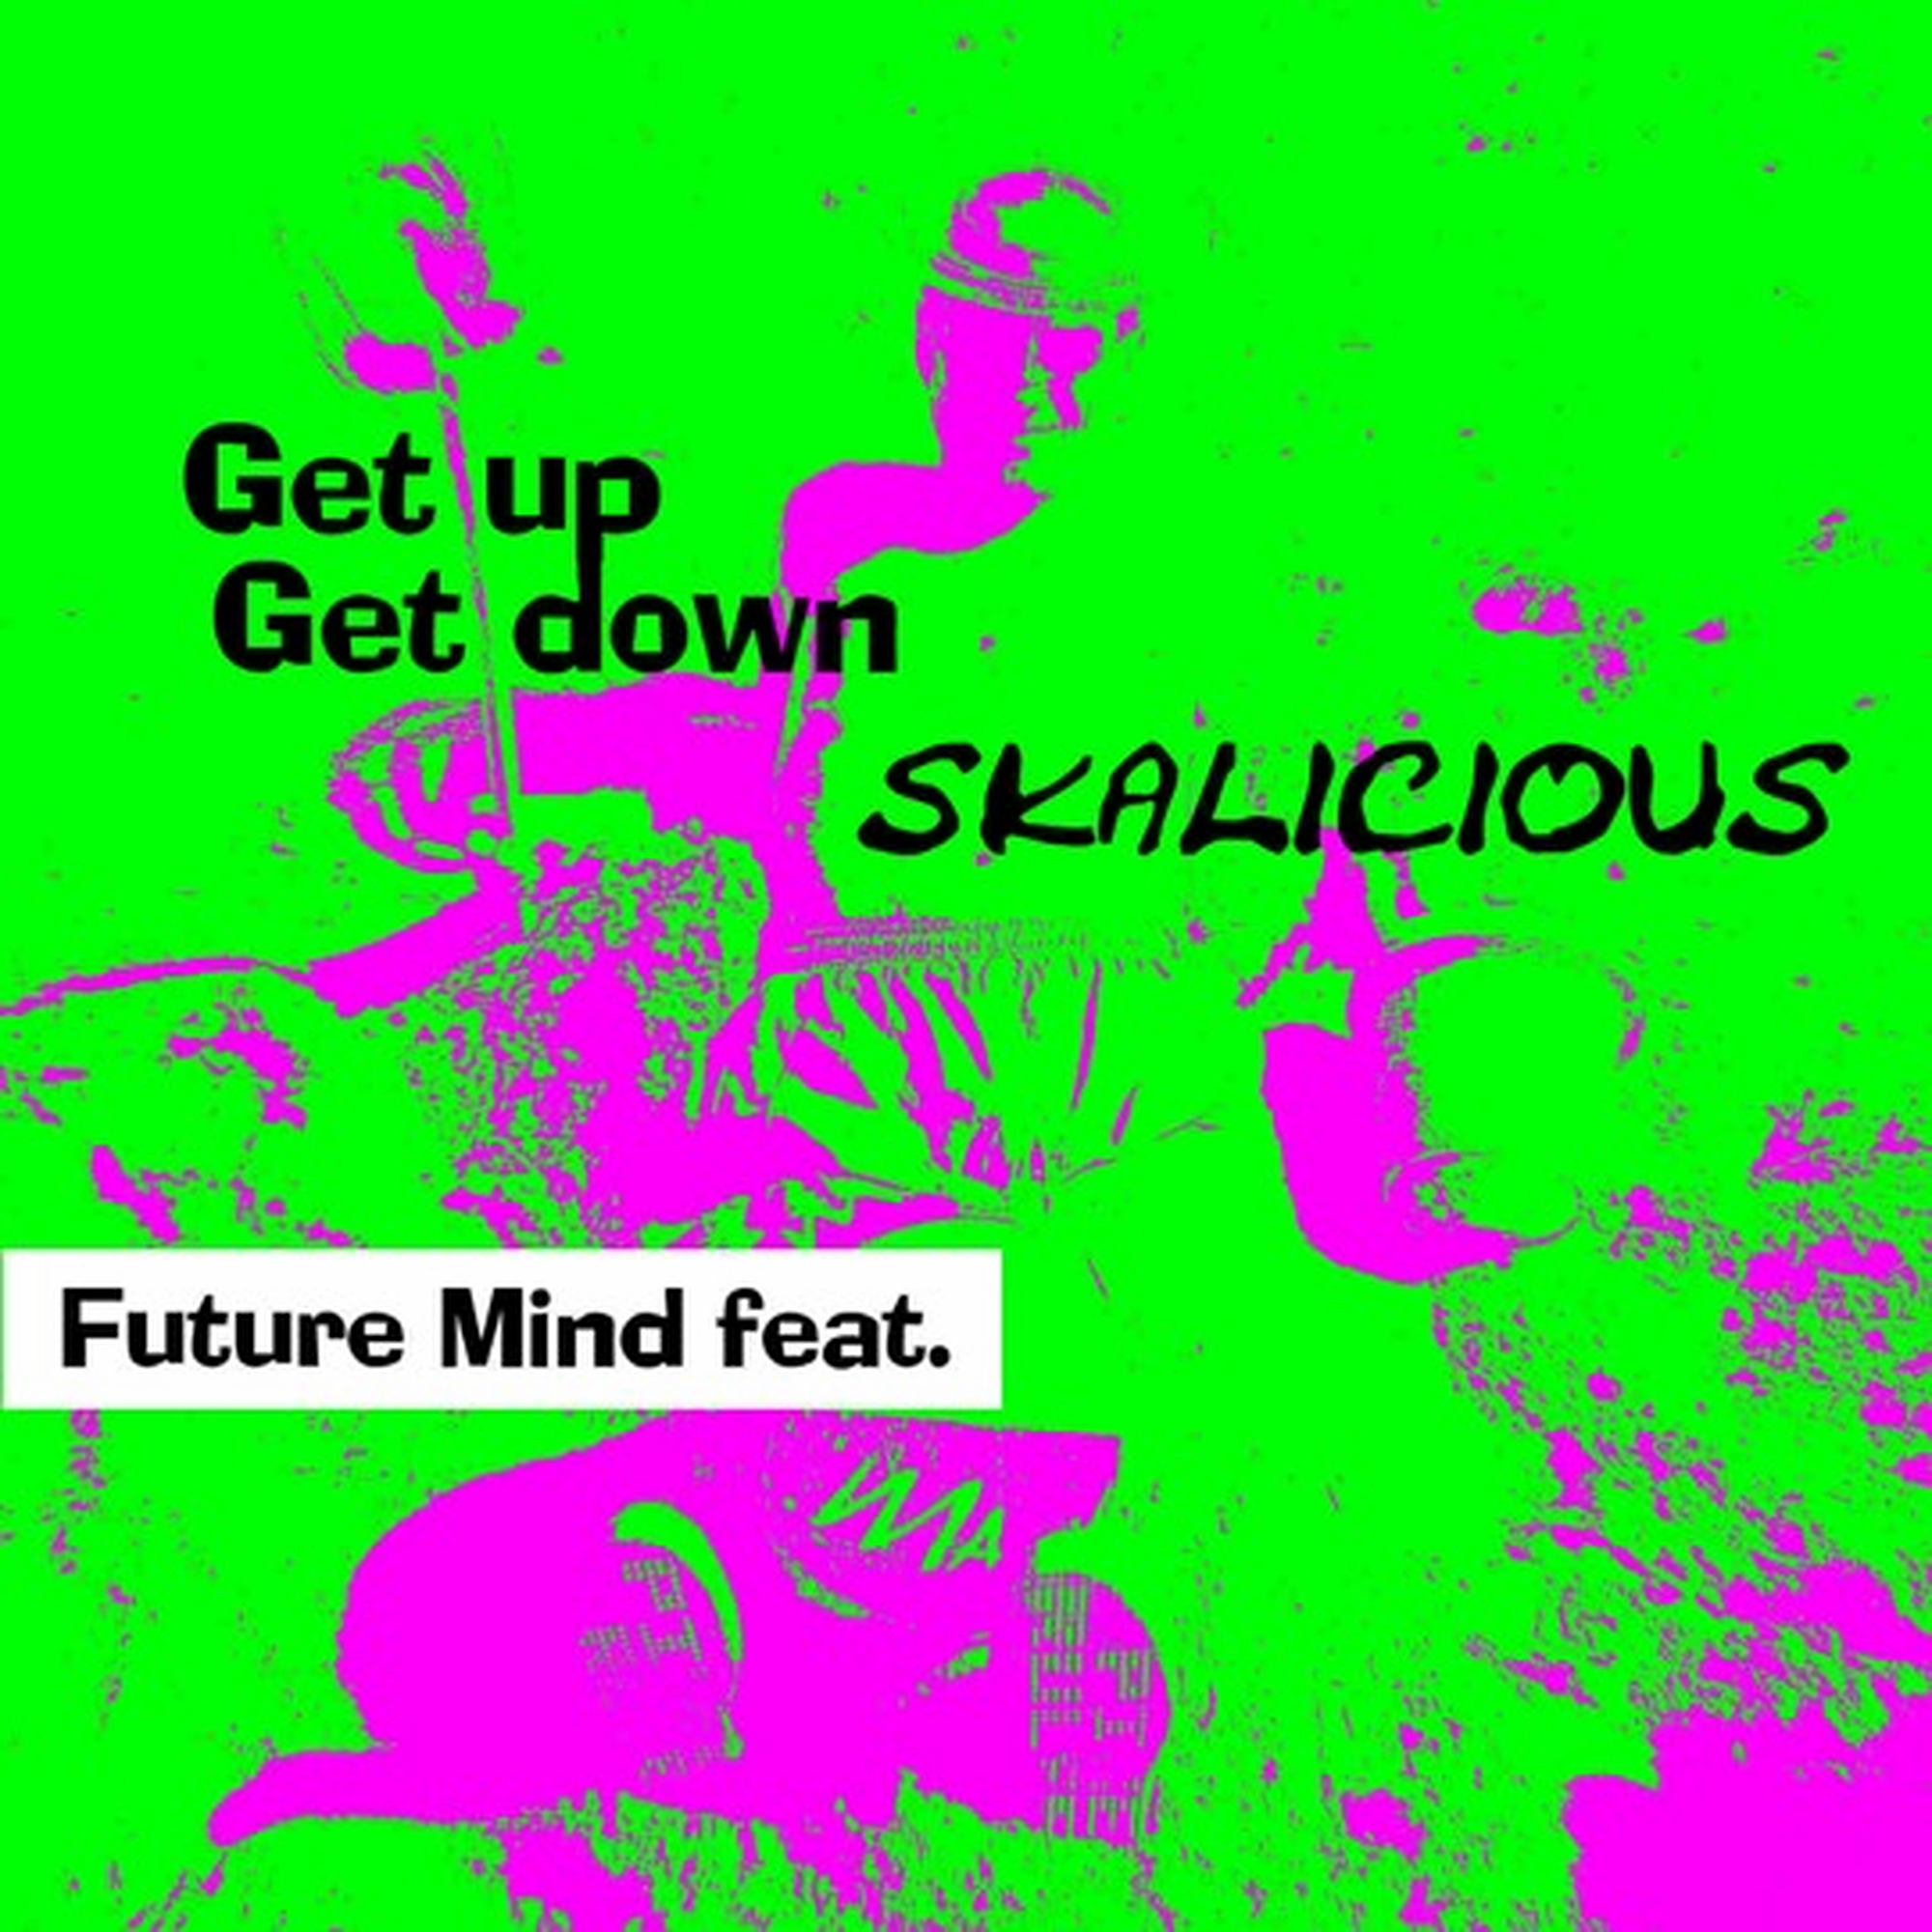 Future-Mind-Skalicious-Get-Up